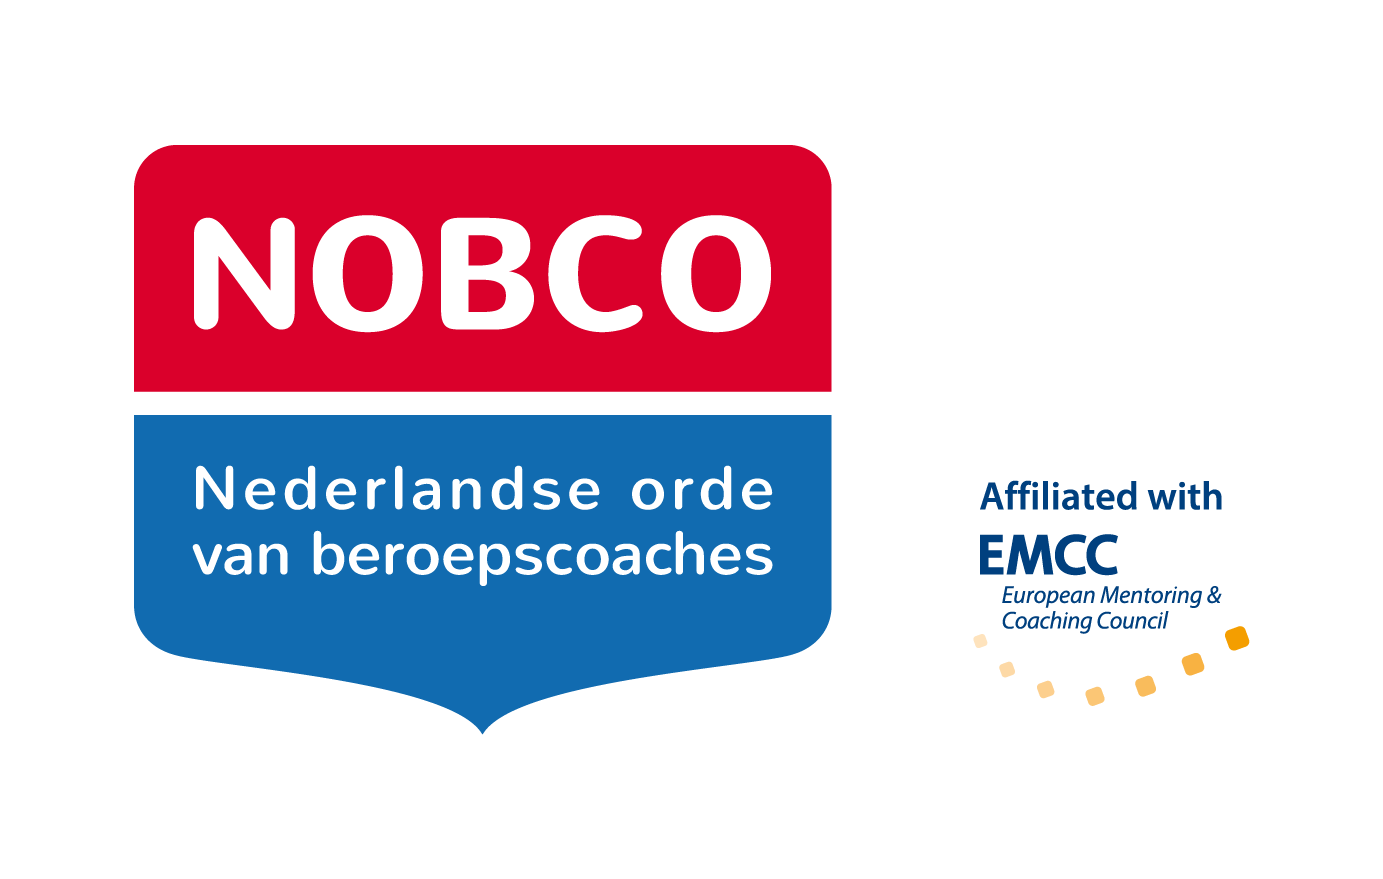 logo nobco affiliated with emcc rgb